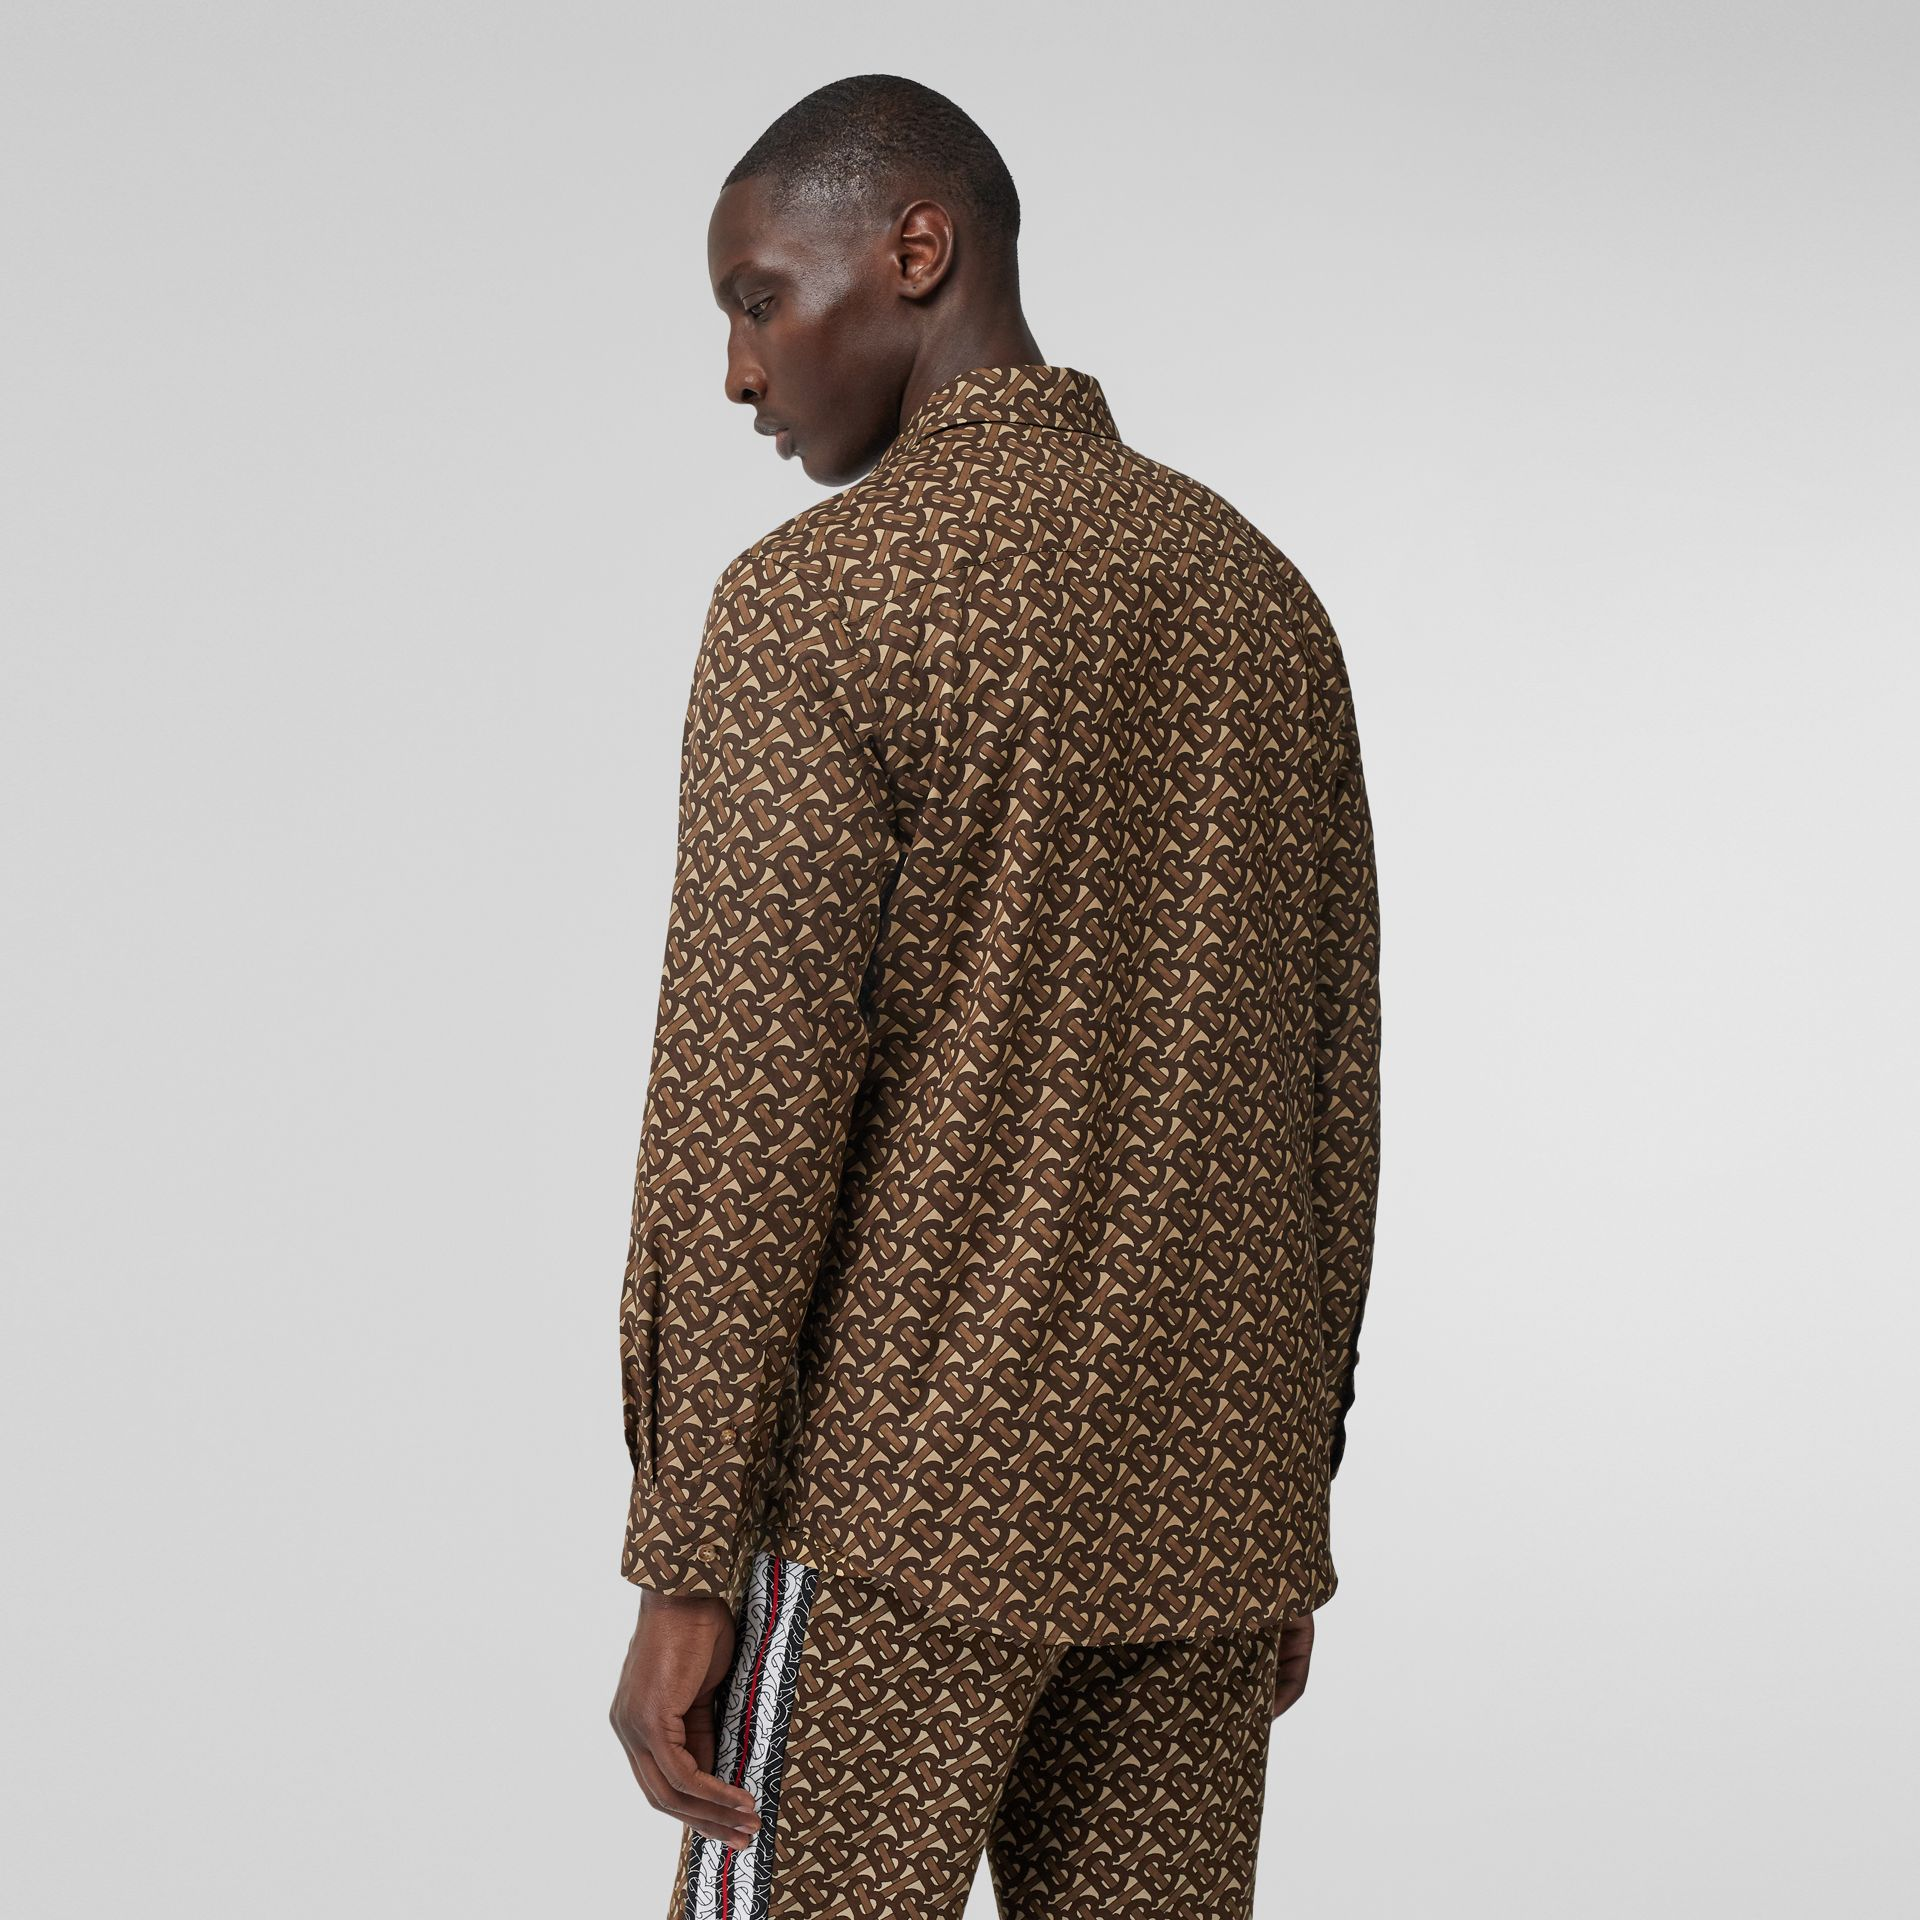 Monogram Stripe Print Cotton Shirt in Bridle Brown - Men | Burberry Canada - gallery image 2